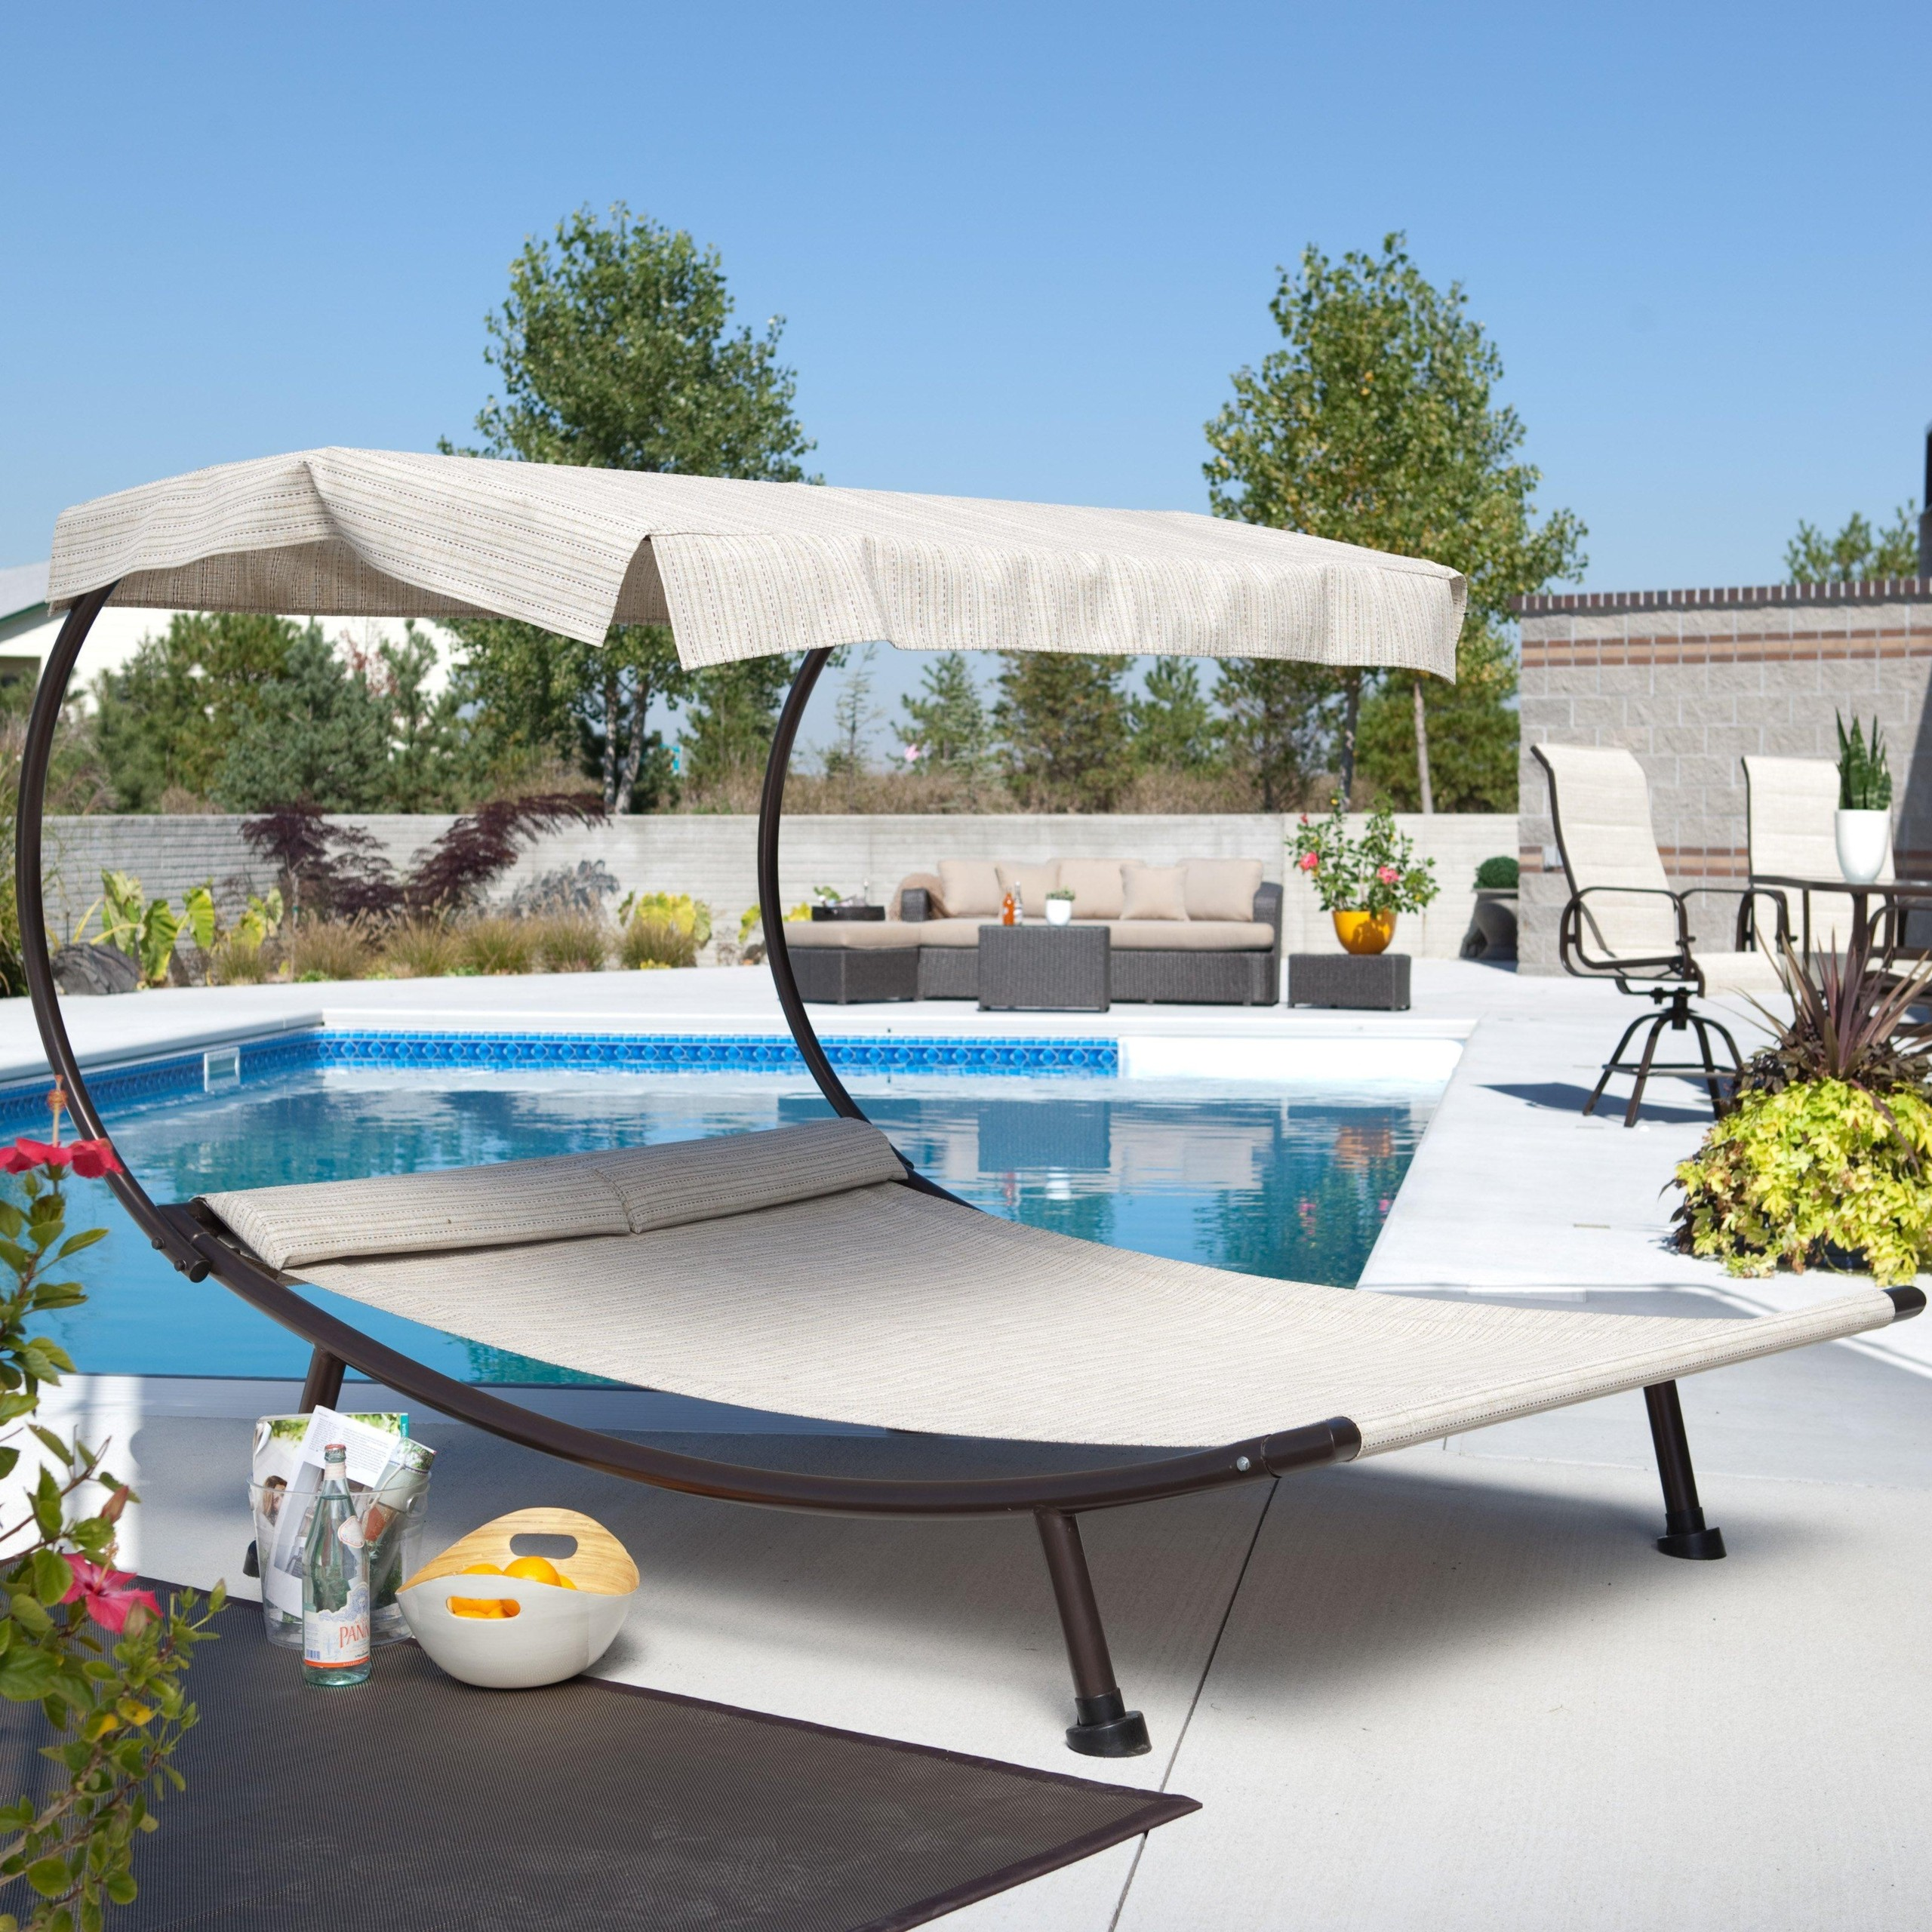 Etonnant Pool Lounge Furniture